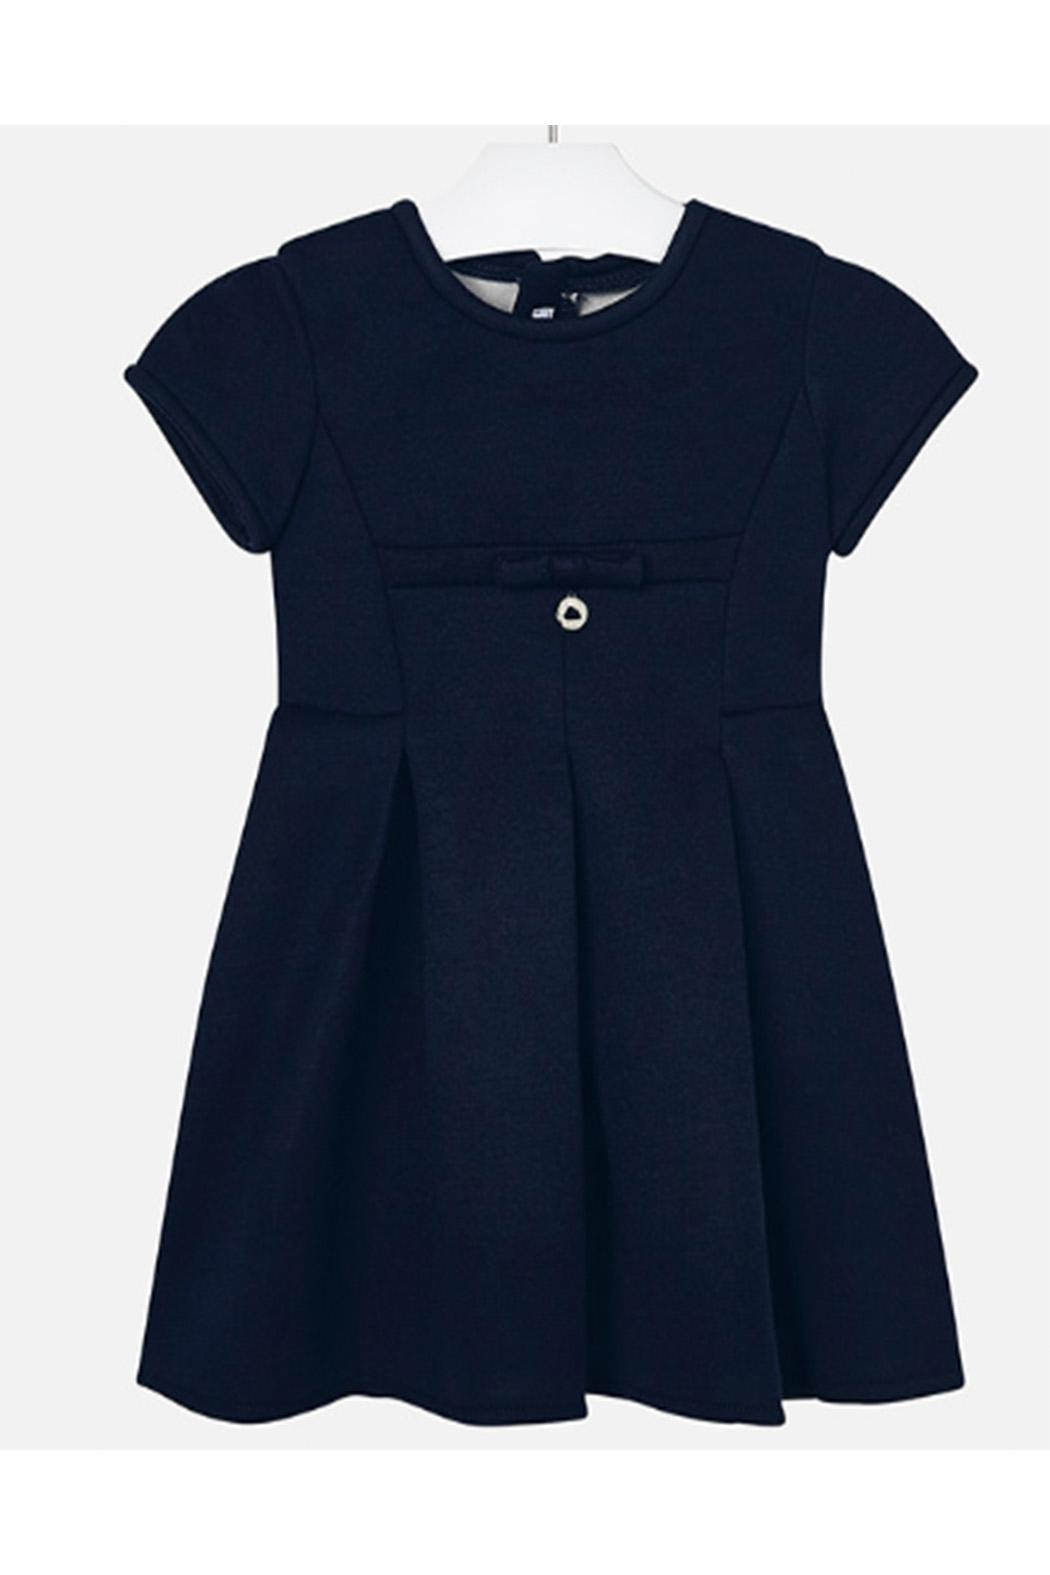 Mayoral Navy Pleated Dress - Main Image